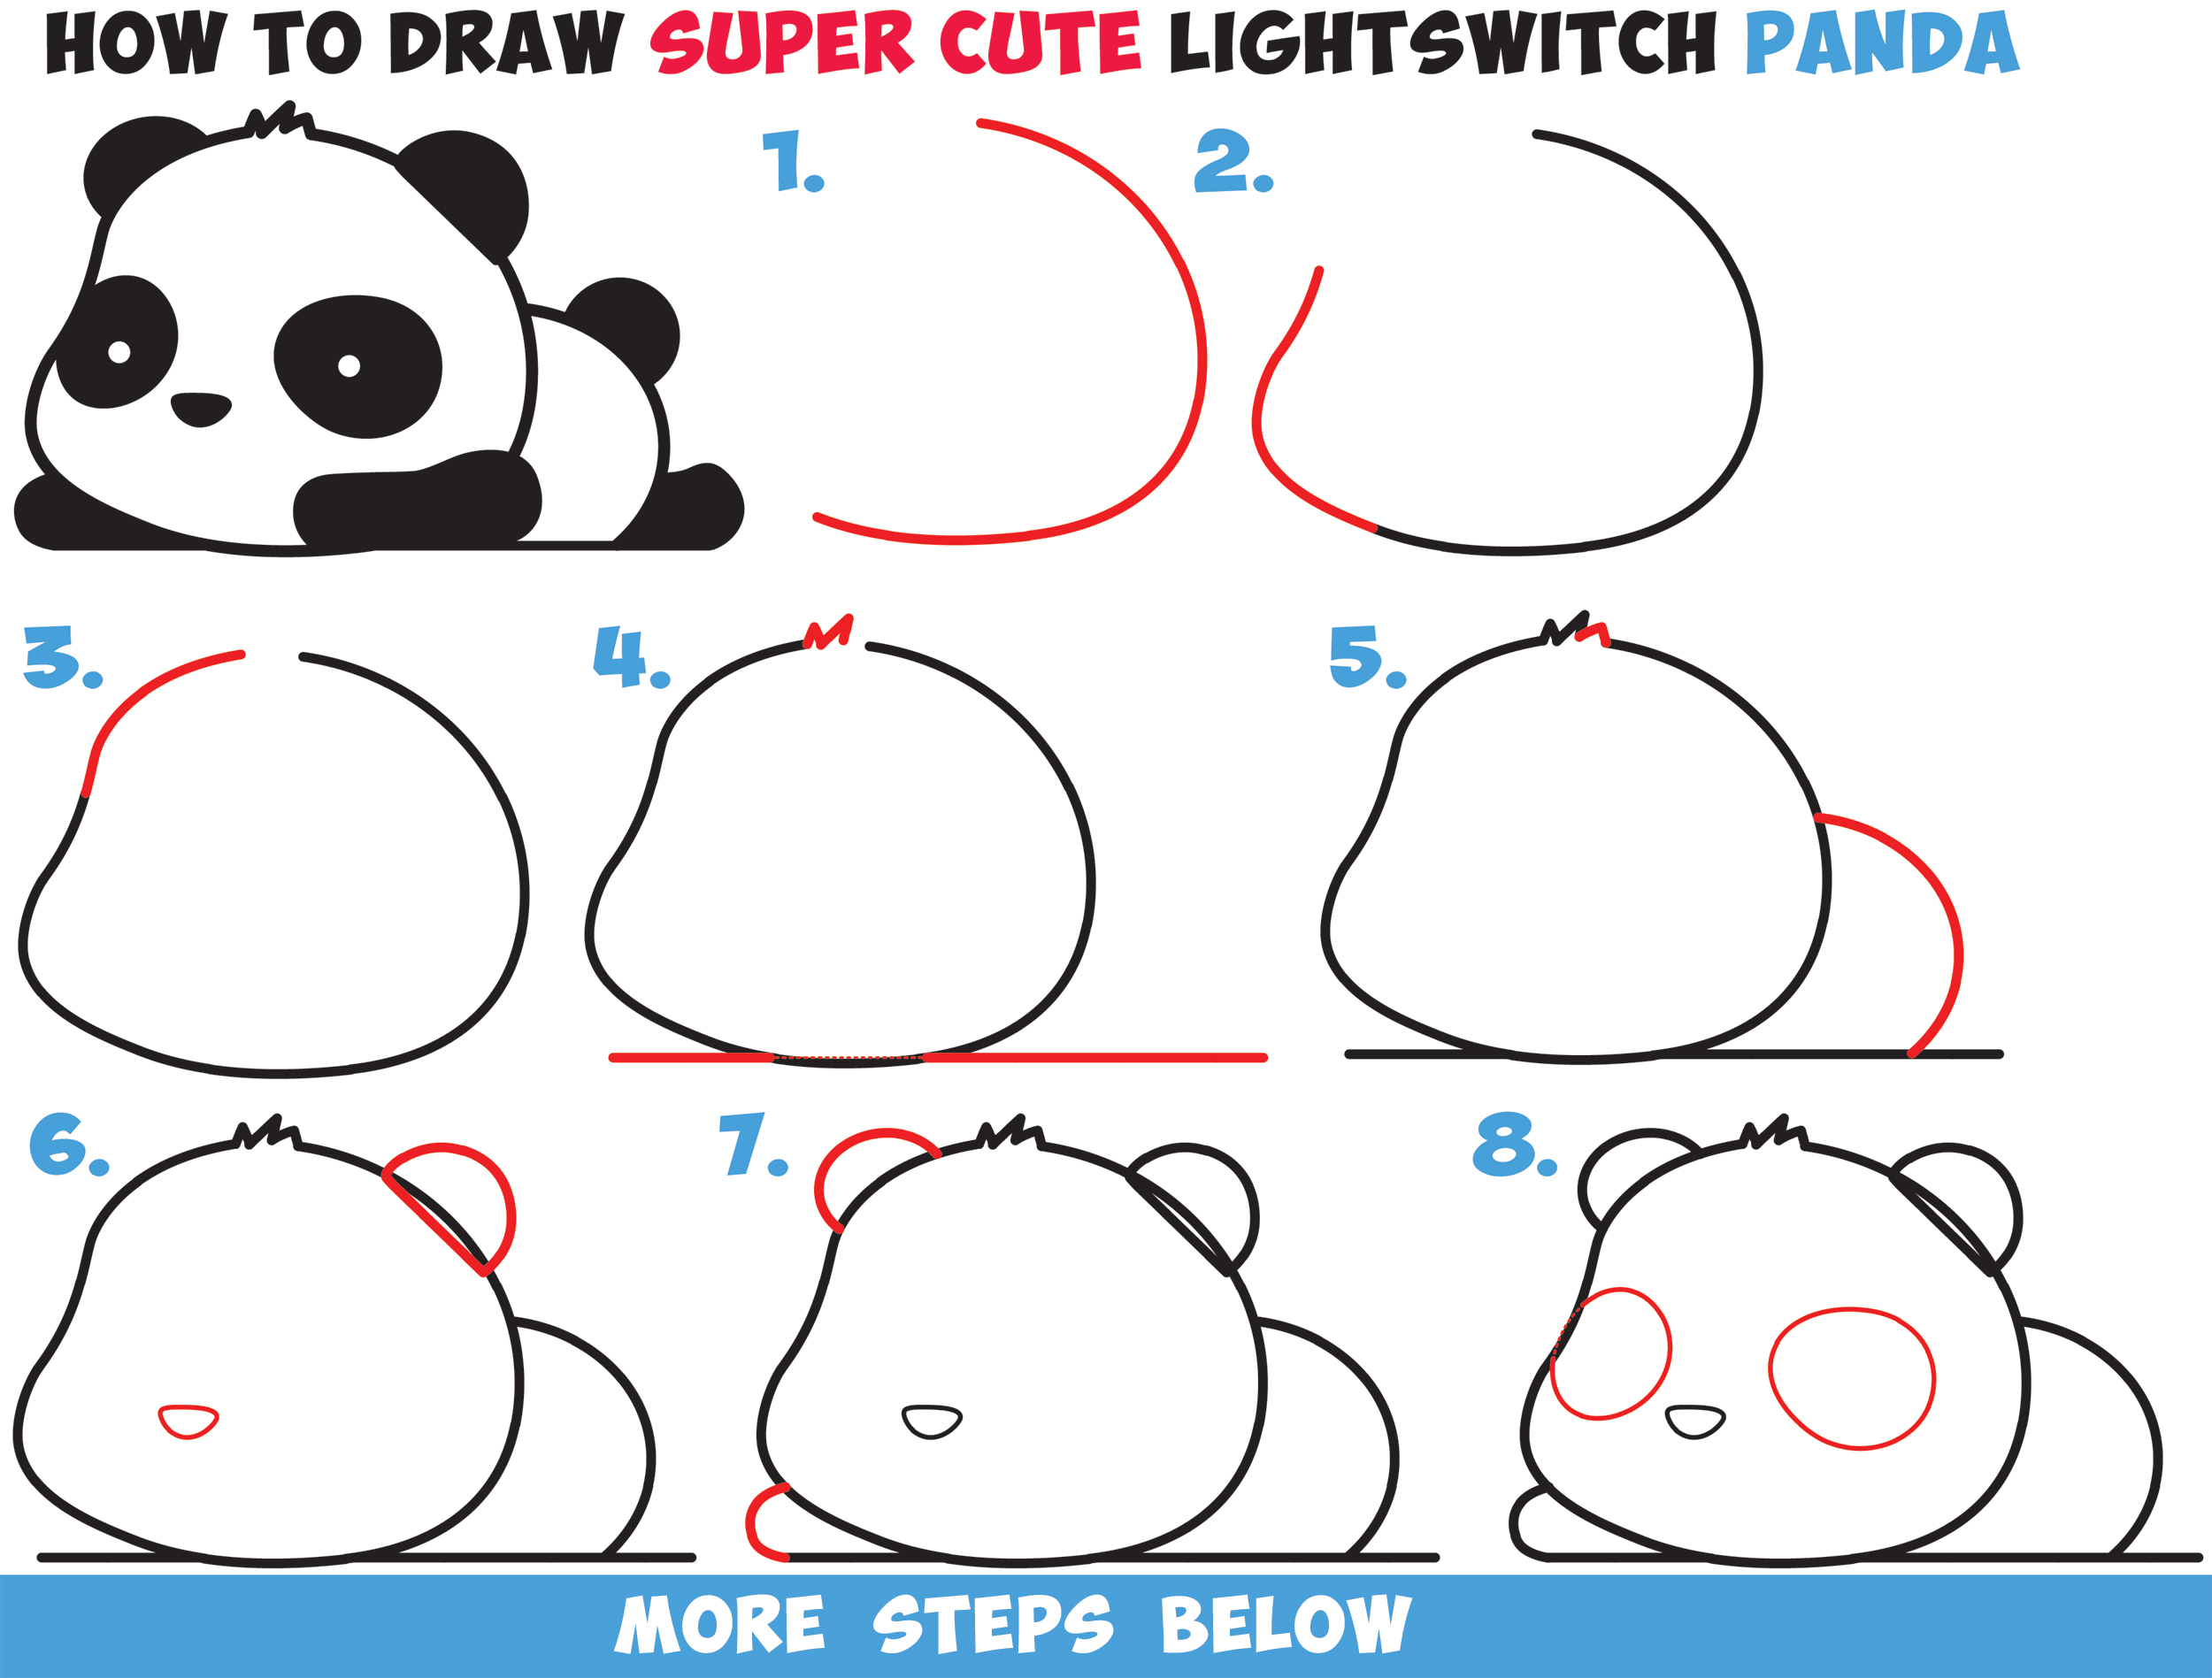 How To Draw A Super Cute Kawaii Panda Bear Laying Down Easy Step By